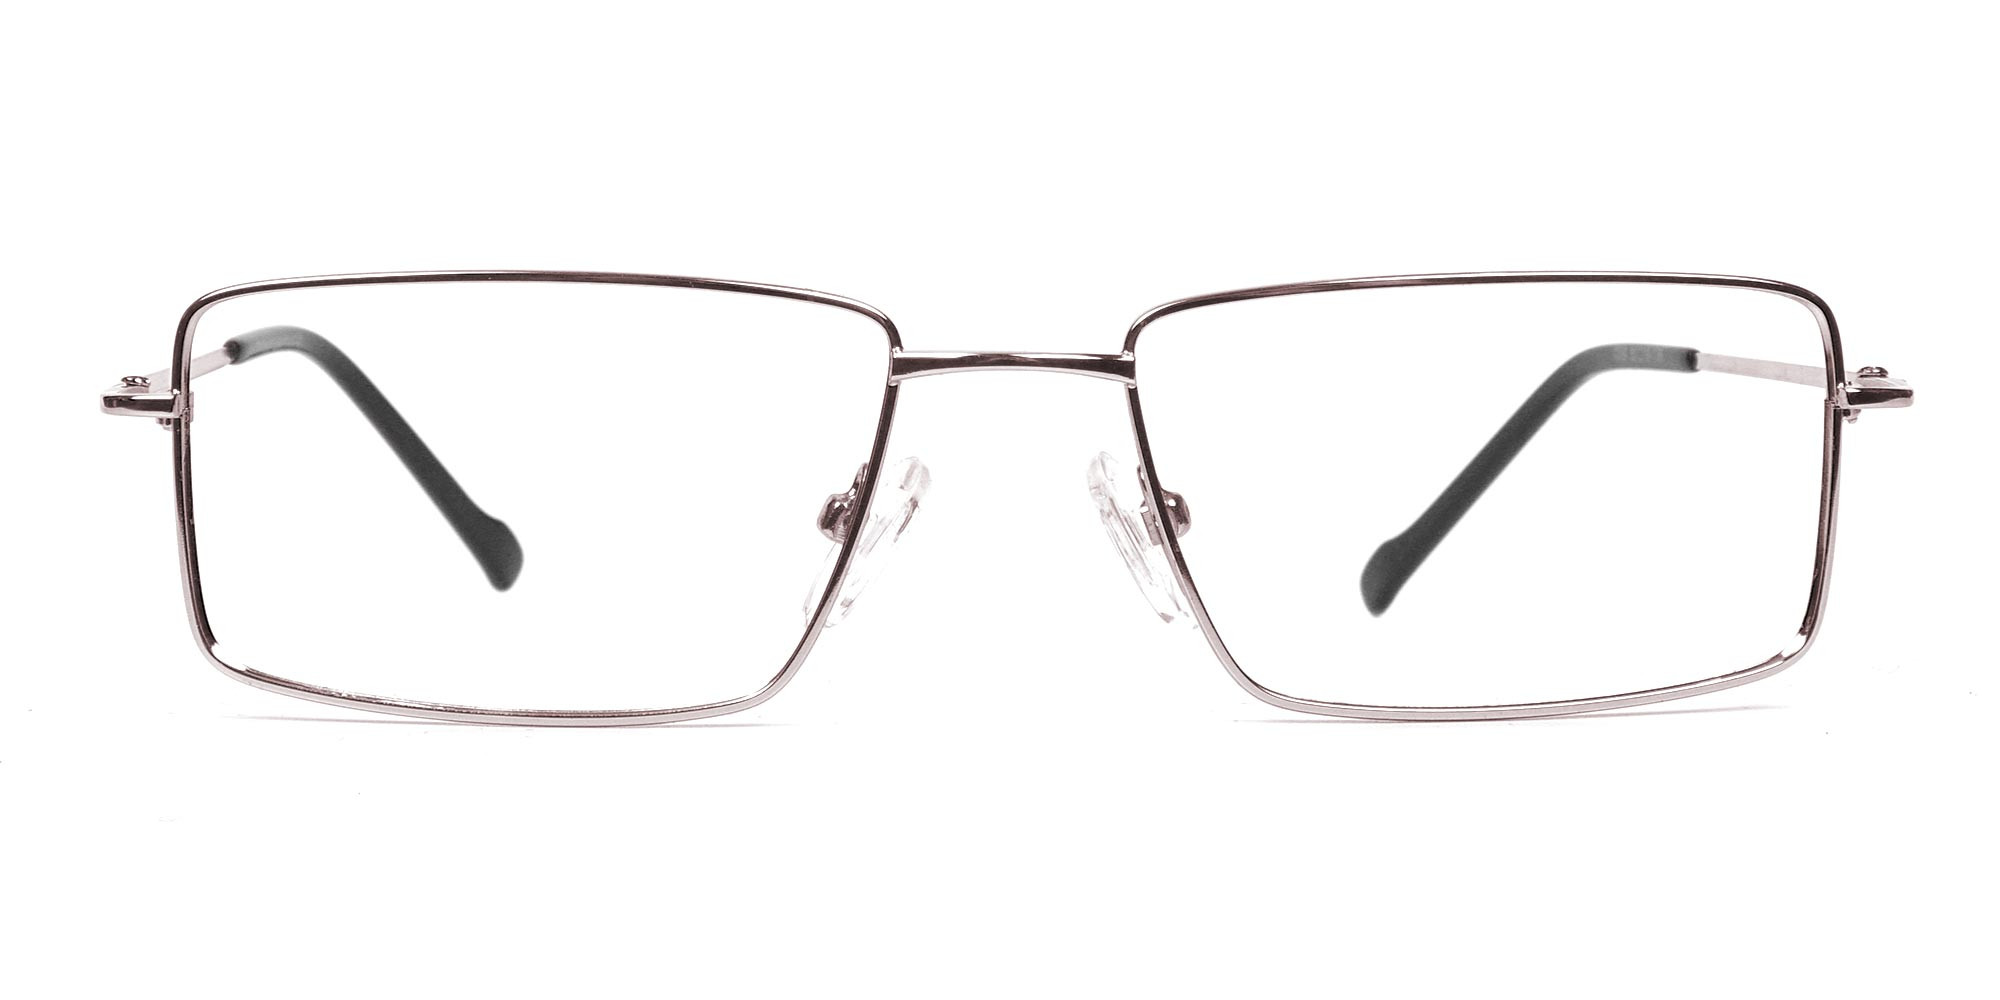 Rectangular Glasses in Silver, Eyeglasses -1